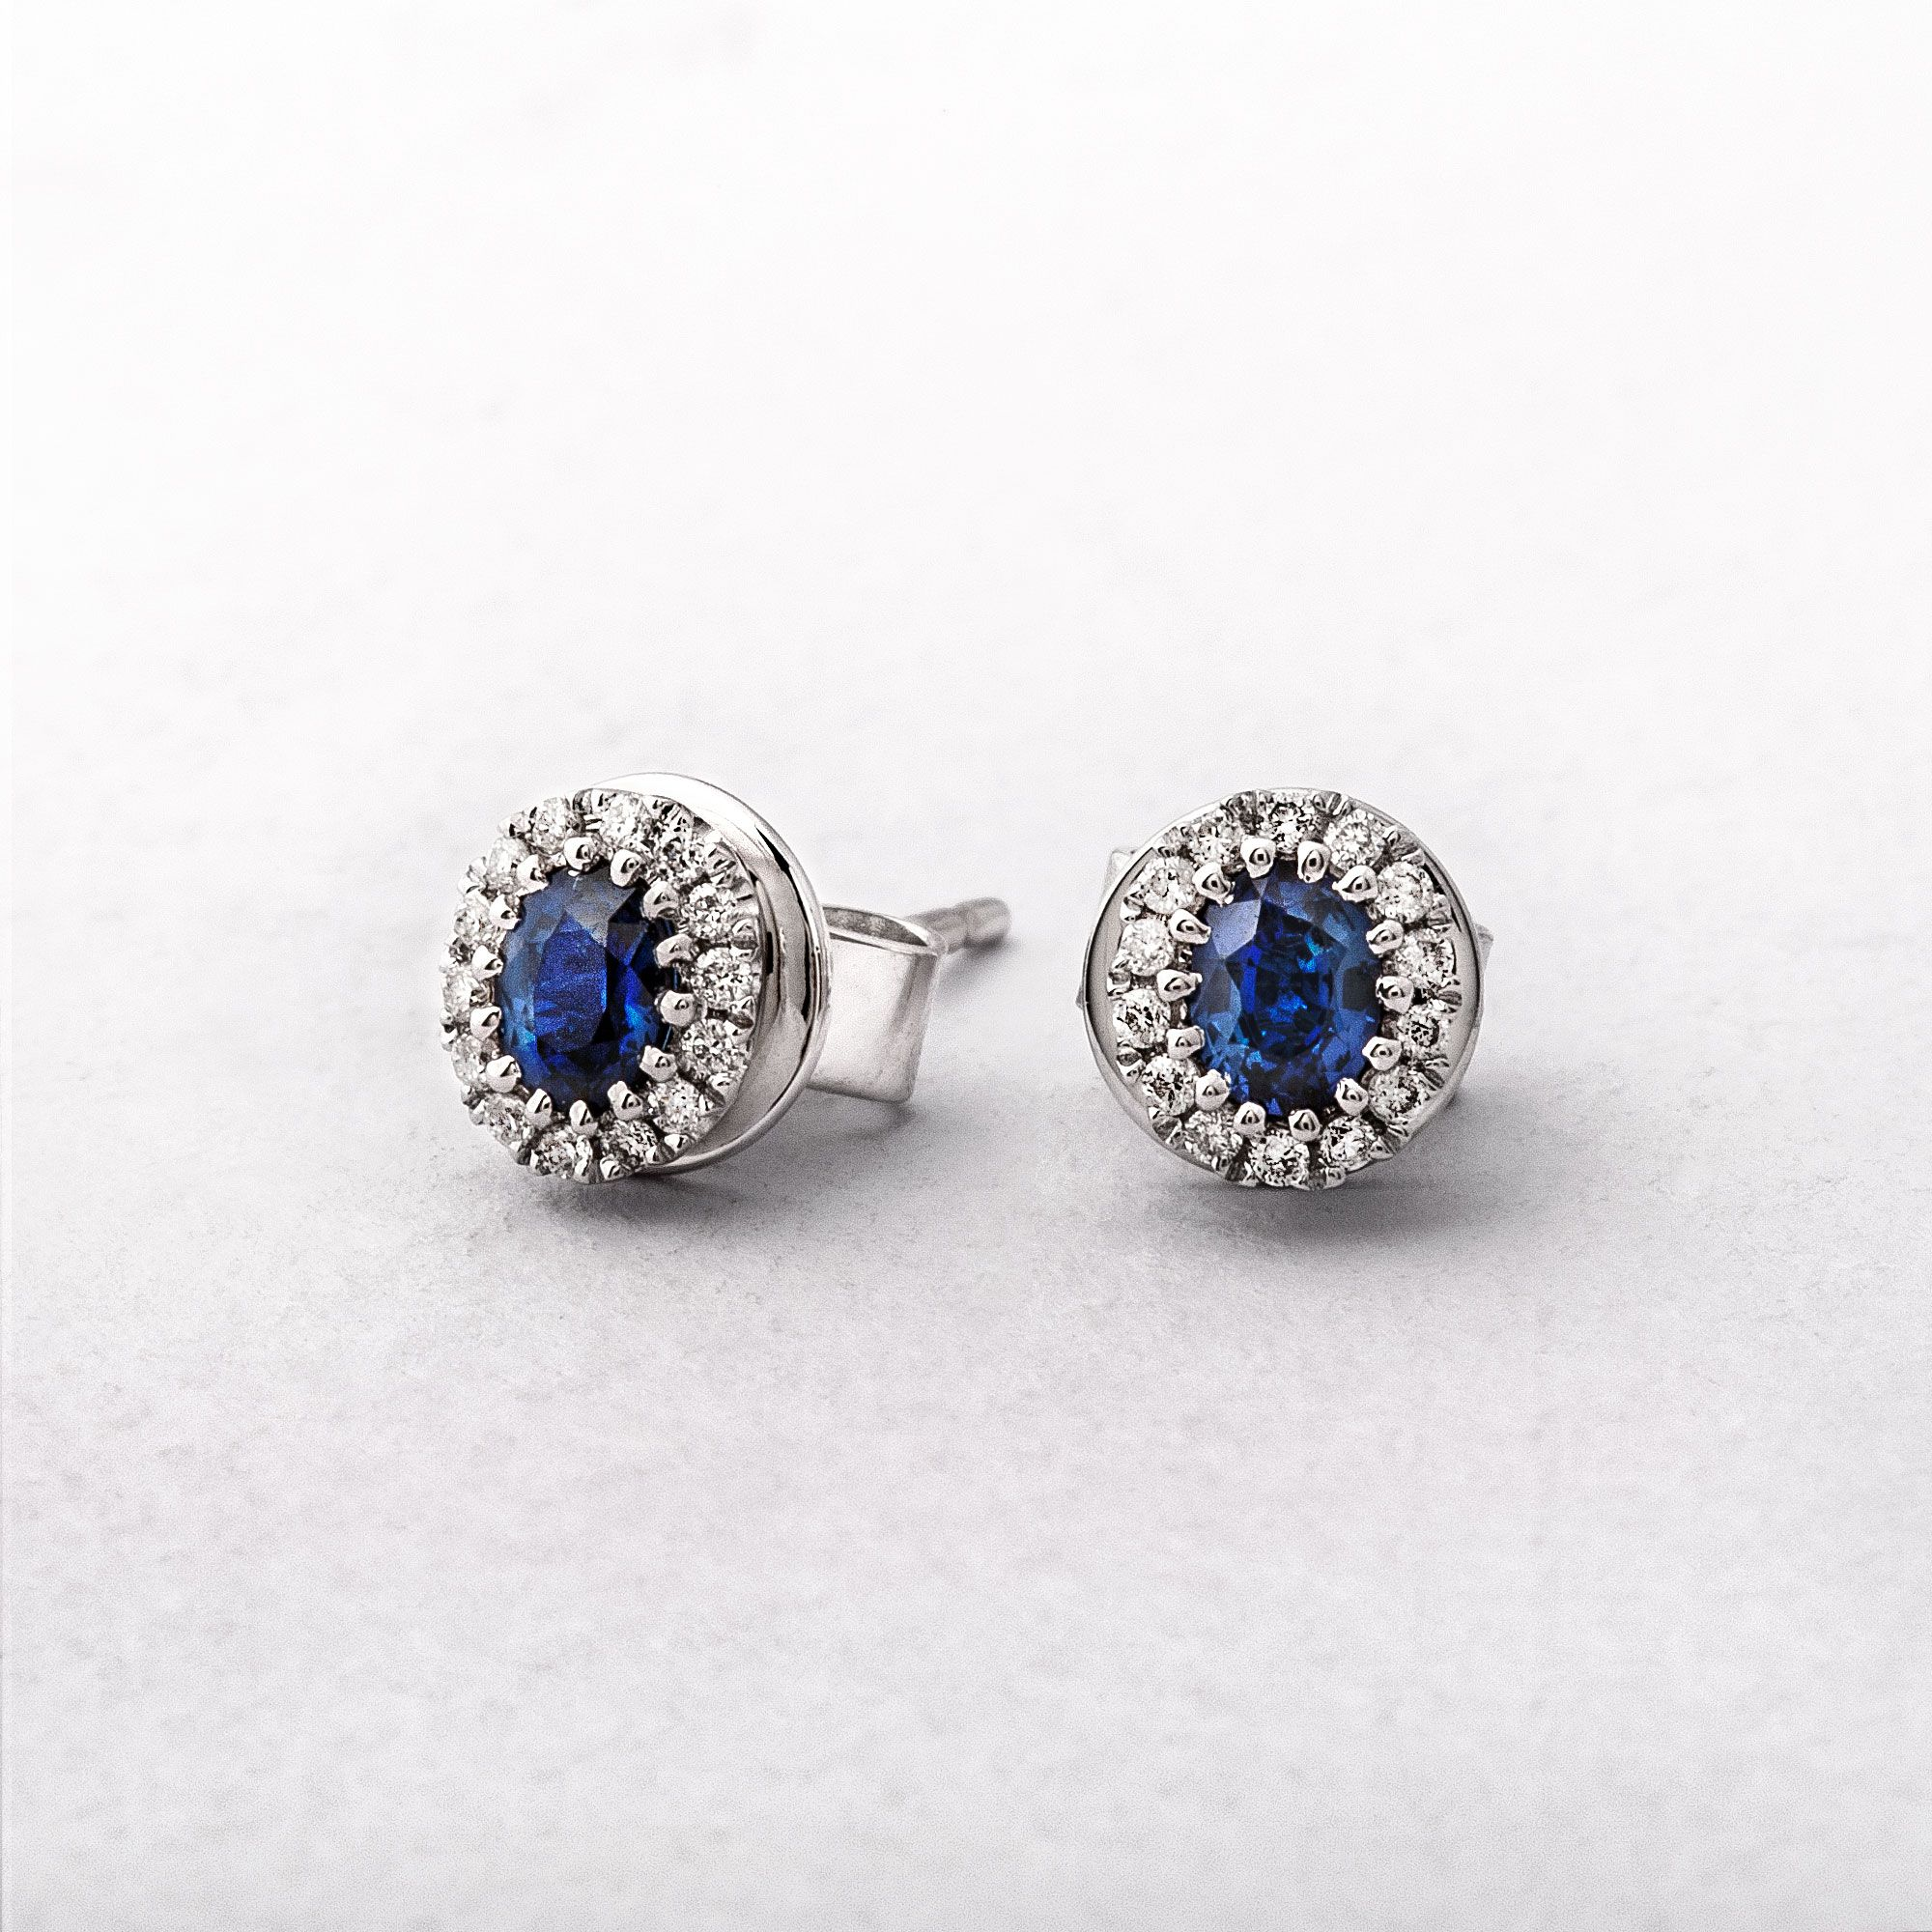 White Gold Oval Sapphire & Diamond Studs Earrings